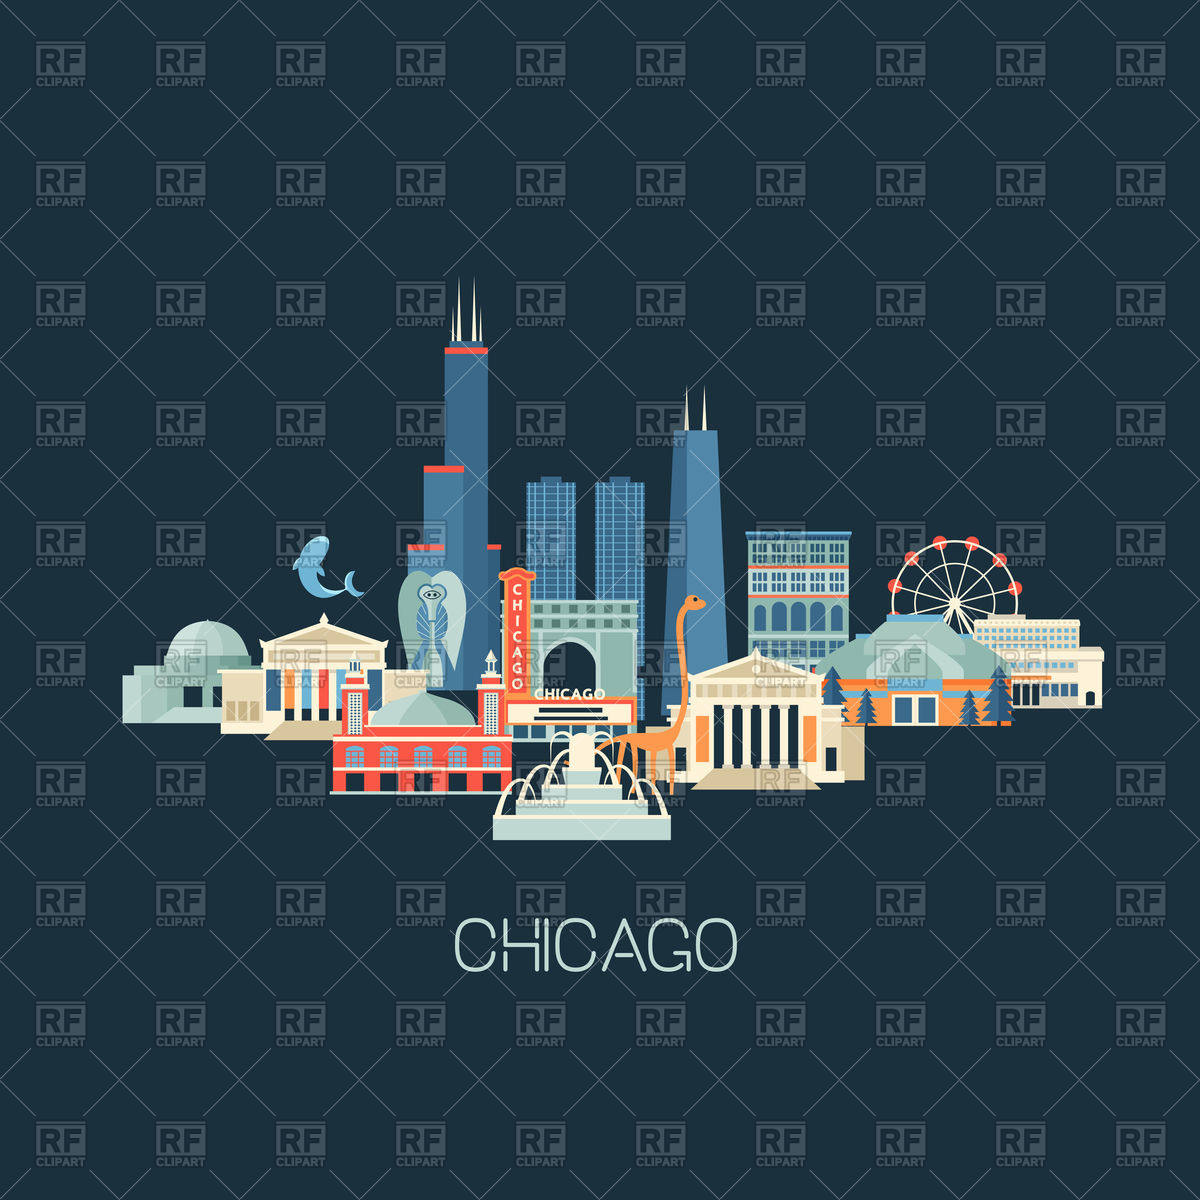 Chicago skyline with famous landmarks Stock Vector Image.